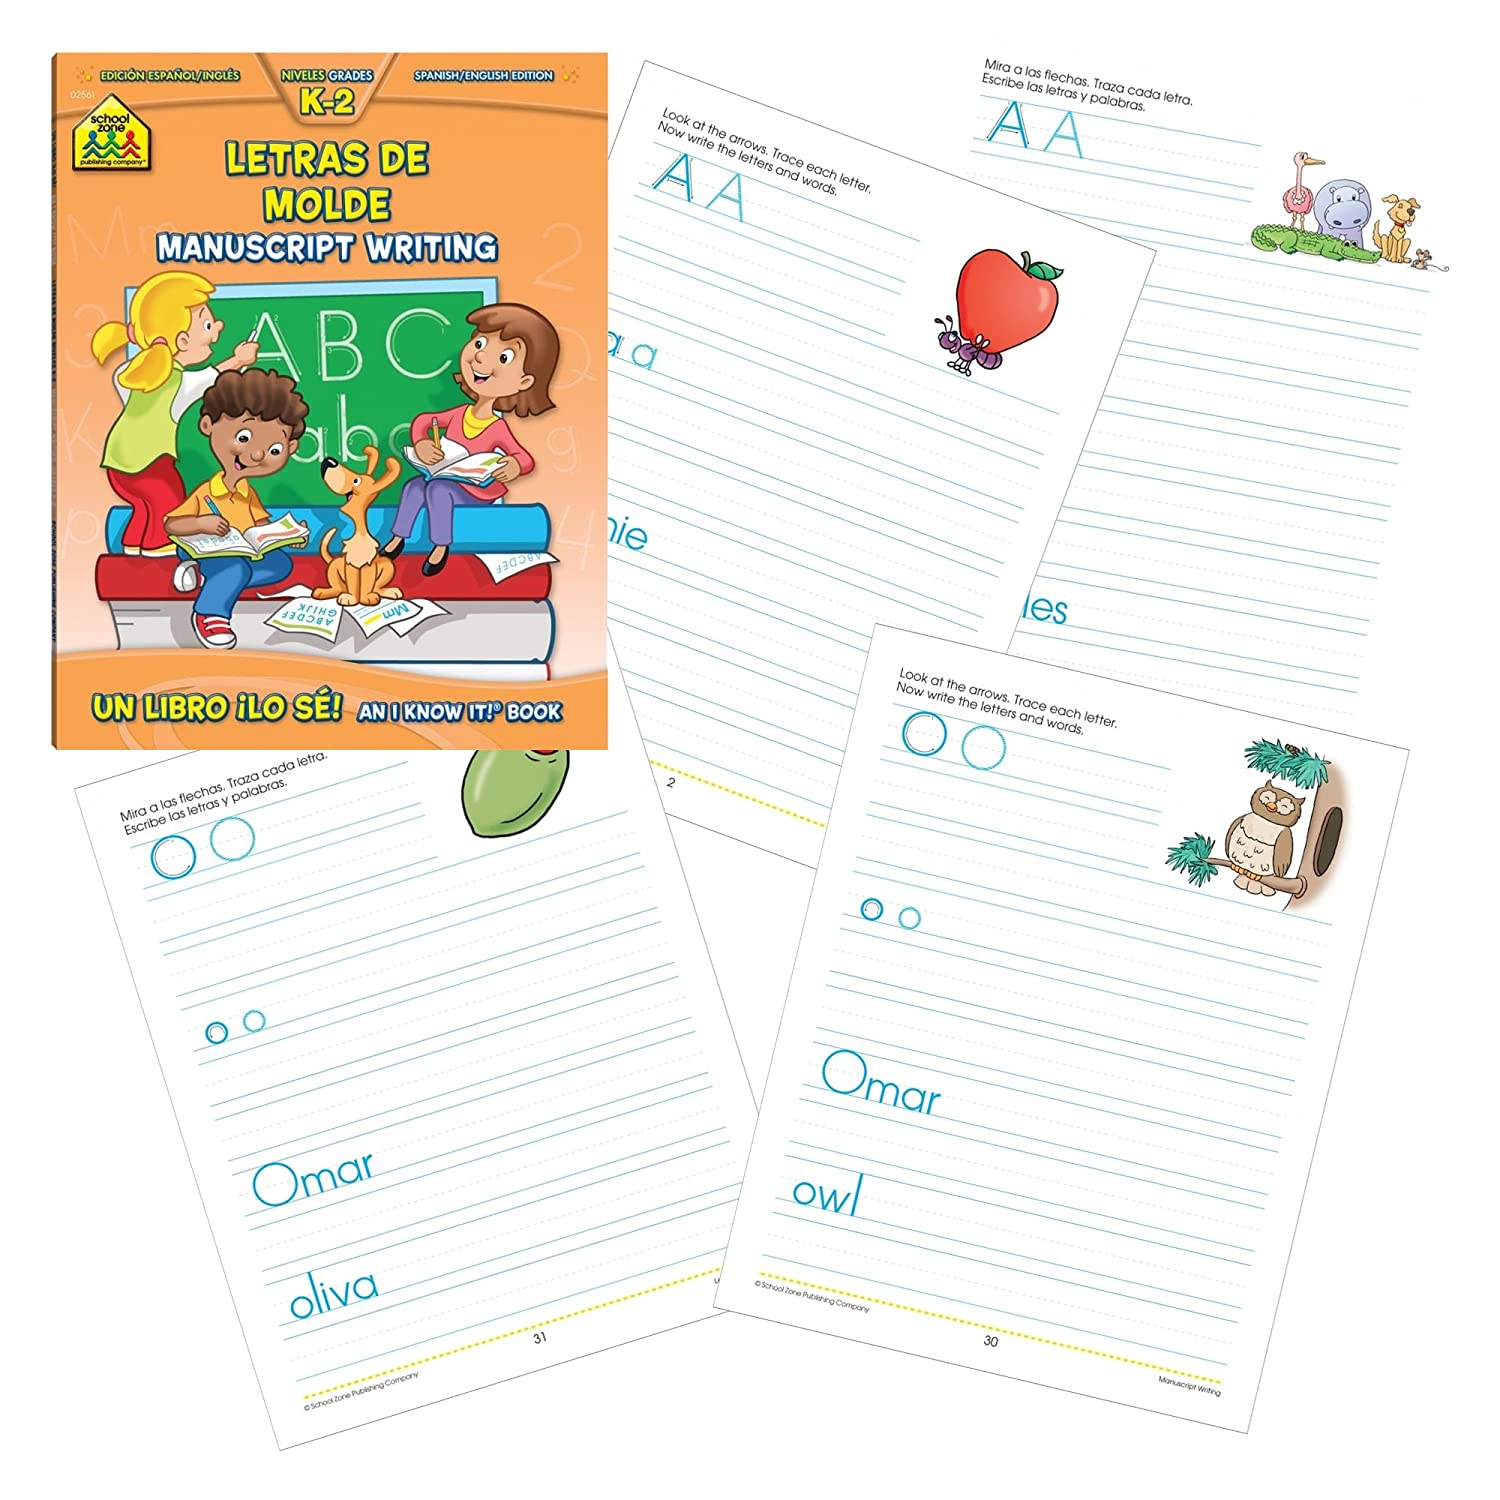 Amazon.com: School Zone Bilingual Spanish/English Flash Card Set with Bilingual Contando/Counting 1-10 Get Ready Workbook & Letras De Molde Manuscript ...